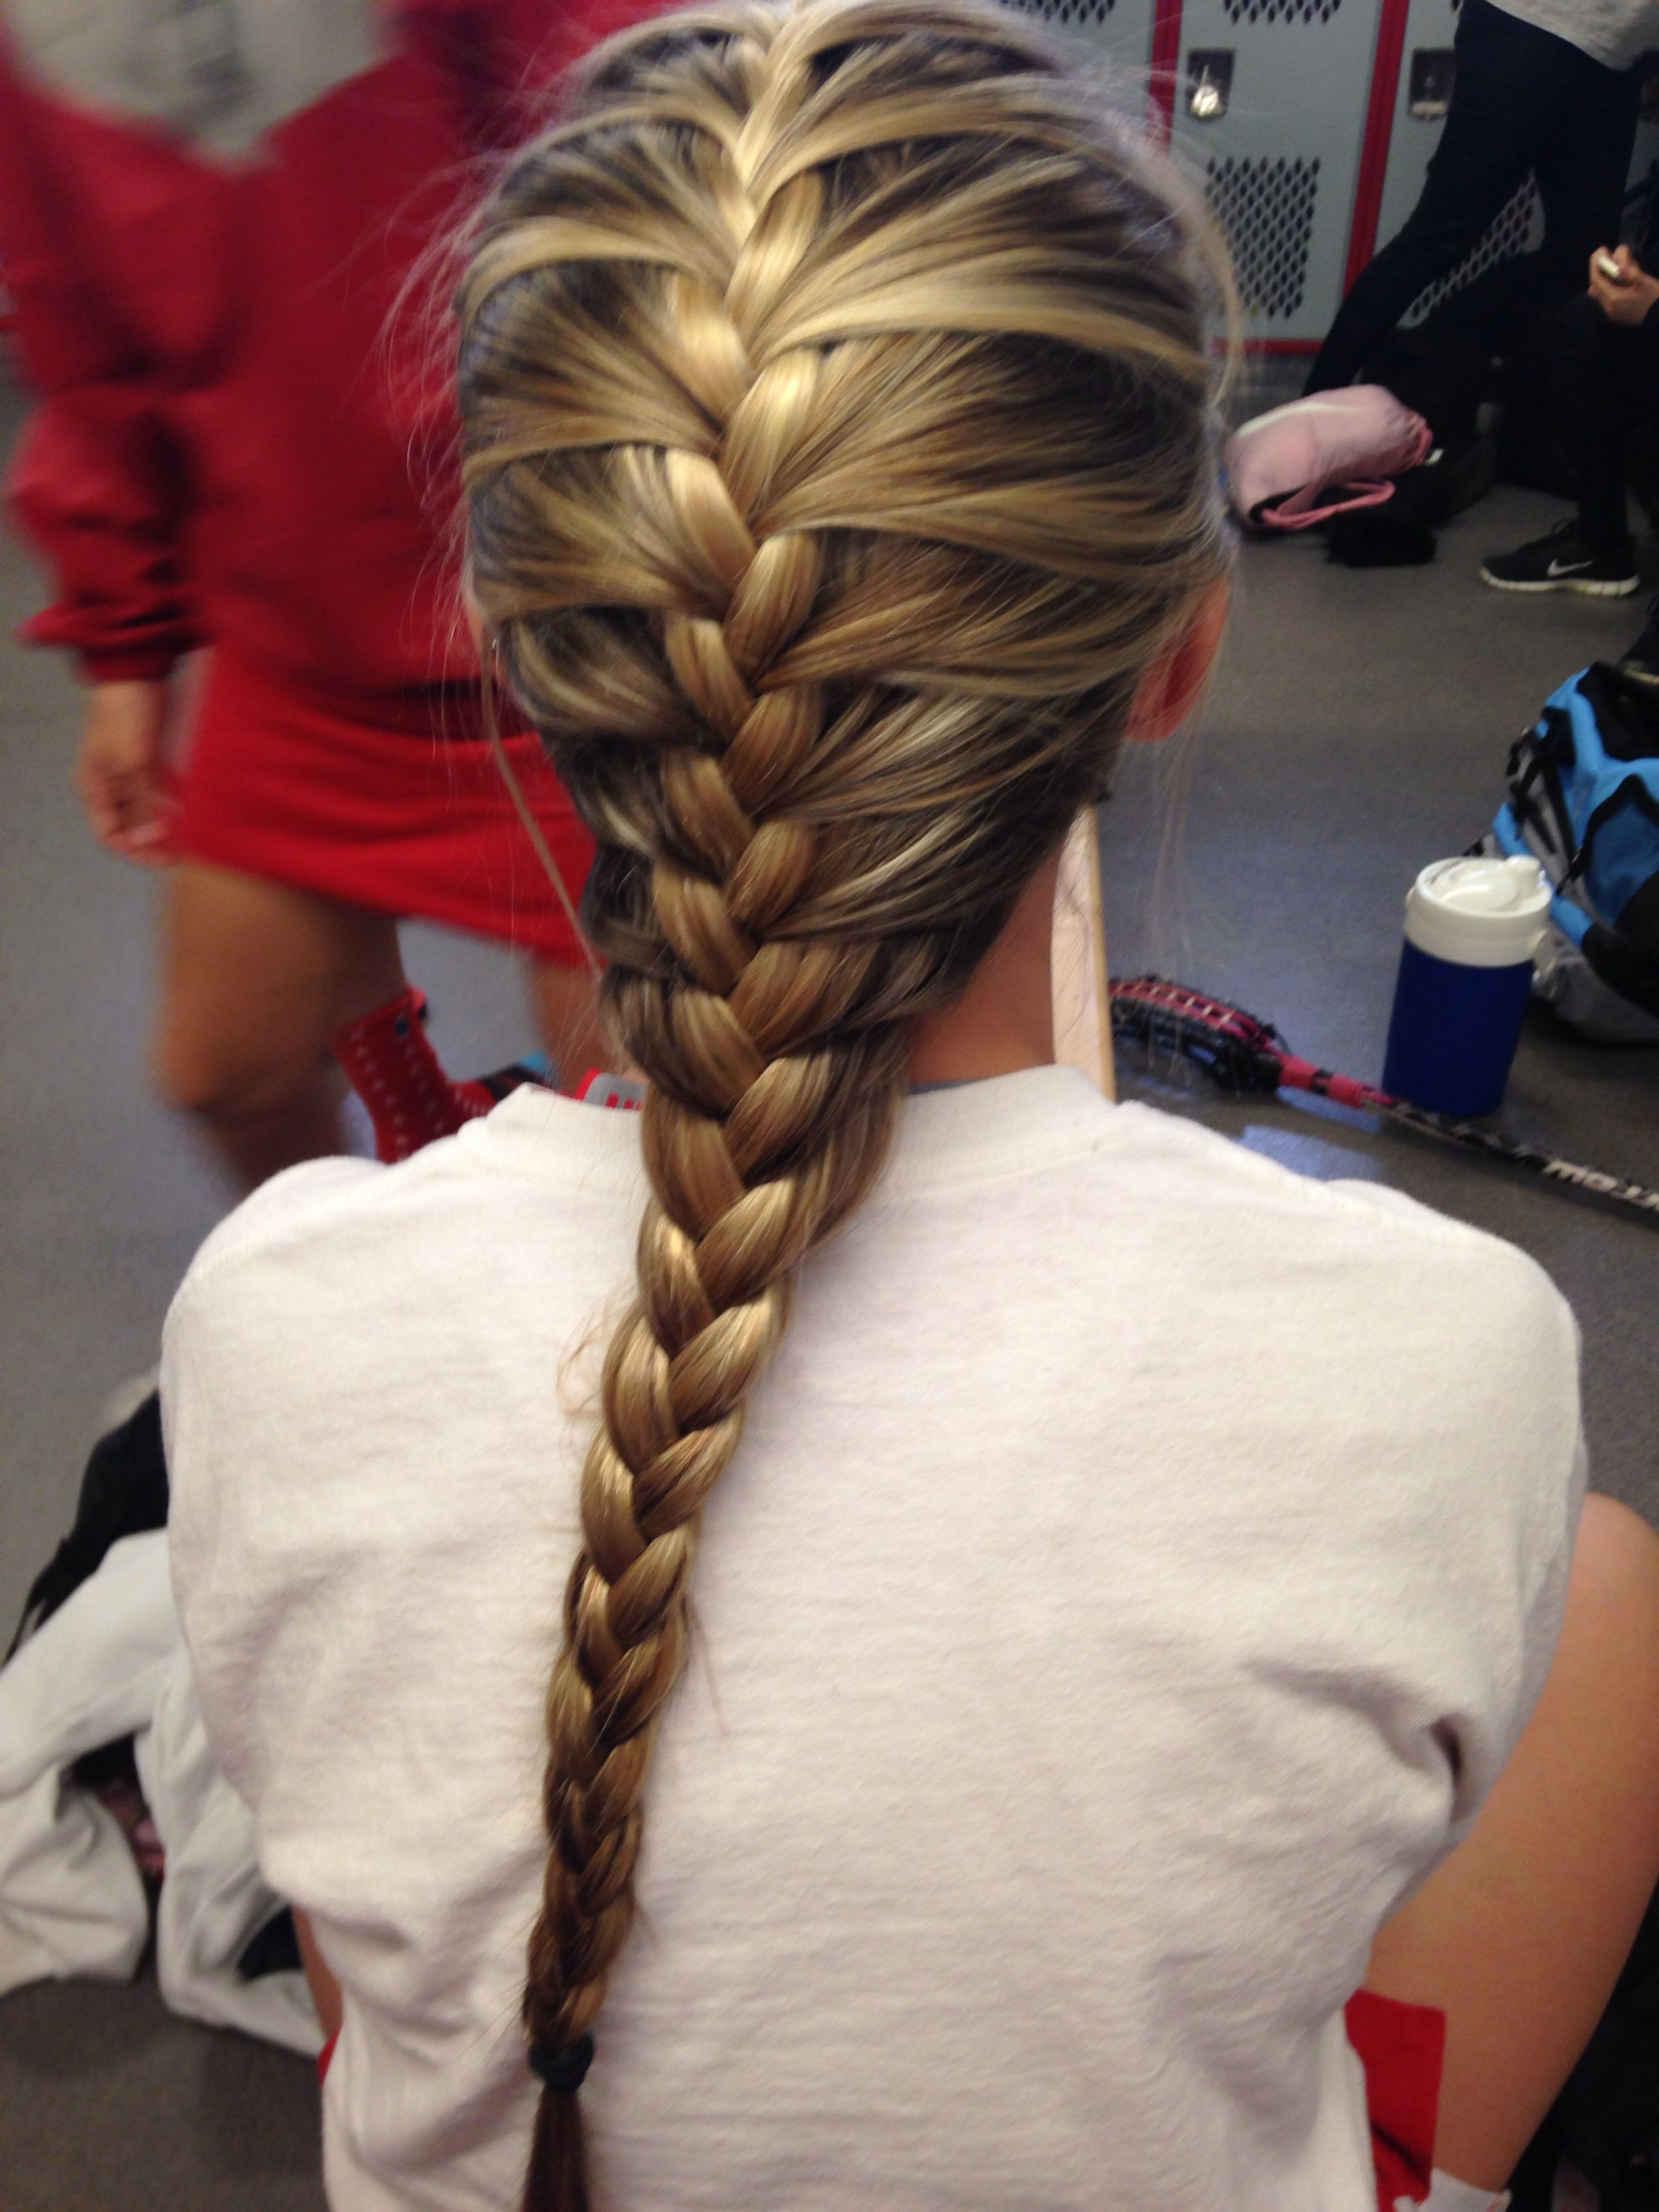 French Braid Hairstyle Blonde Highlights Blonde Highlights Braided Hairstyles French Braid Hairstyles